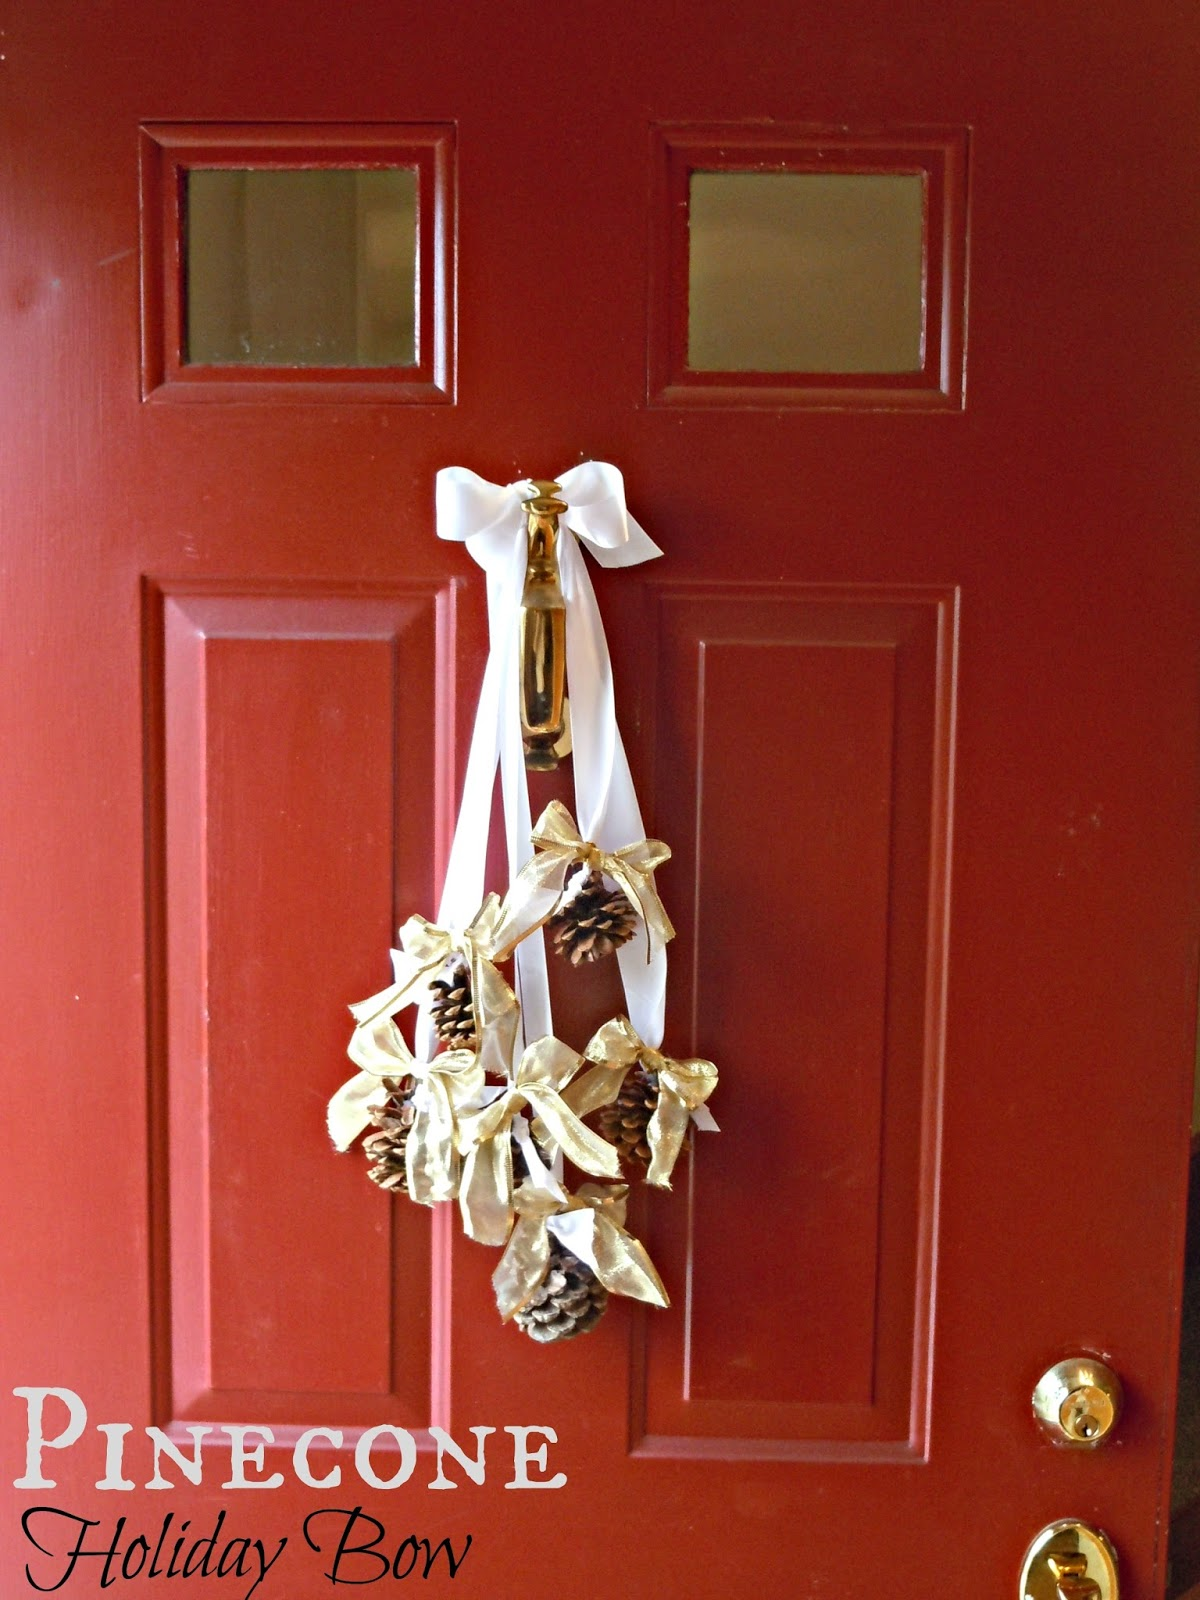 Pine cone holiday bow front door decor life a little for Pine cone door decoration